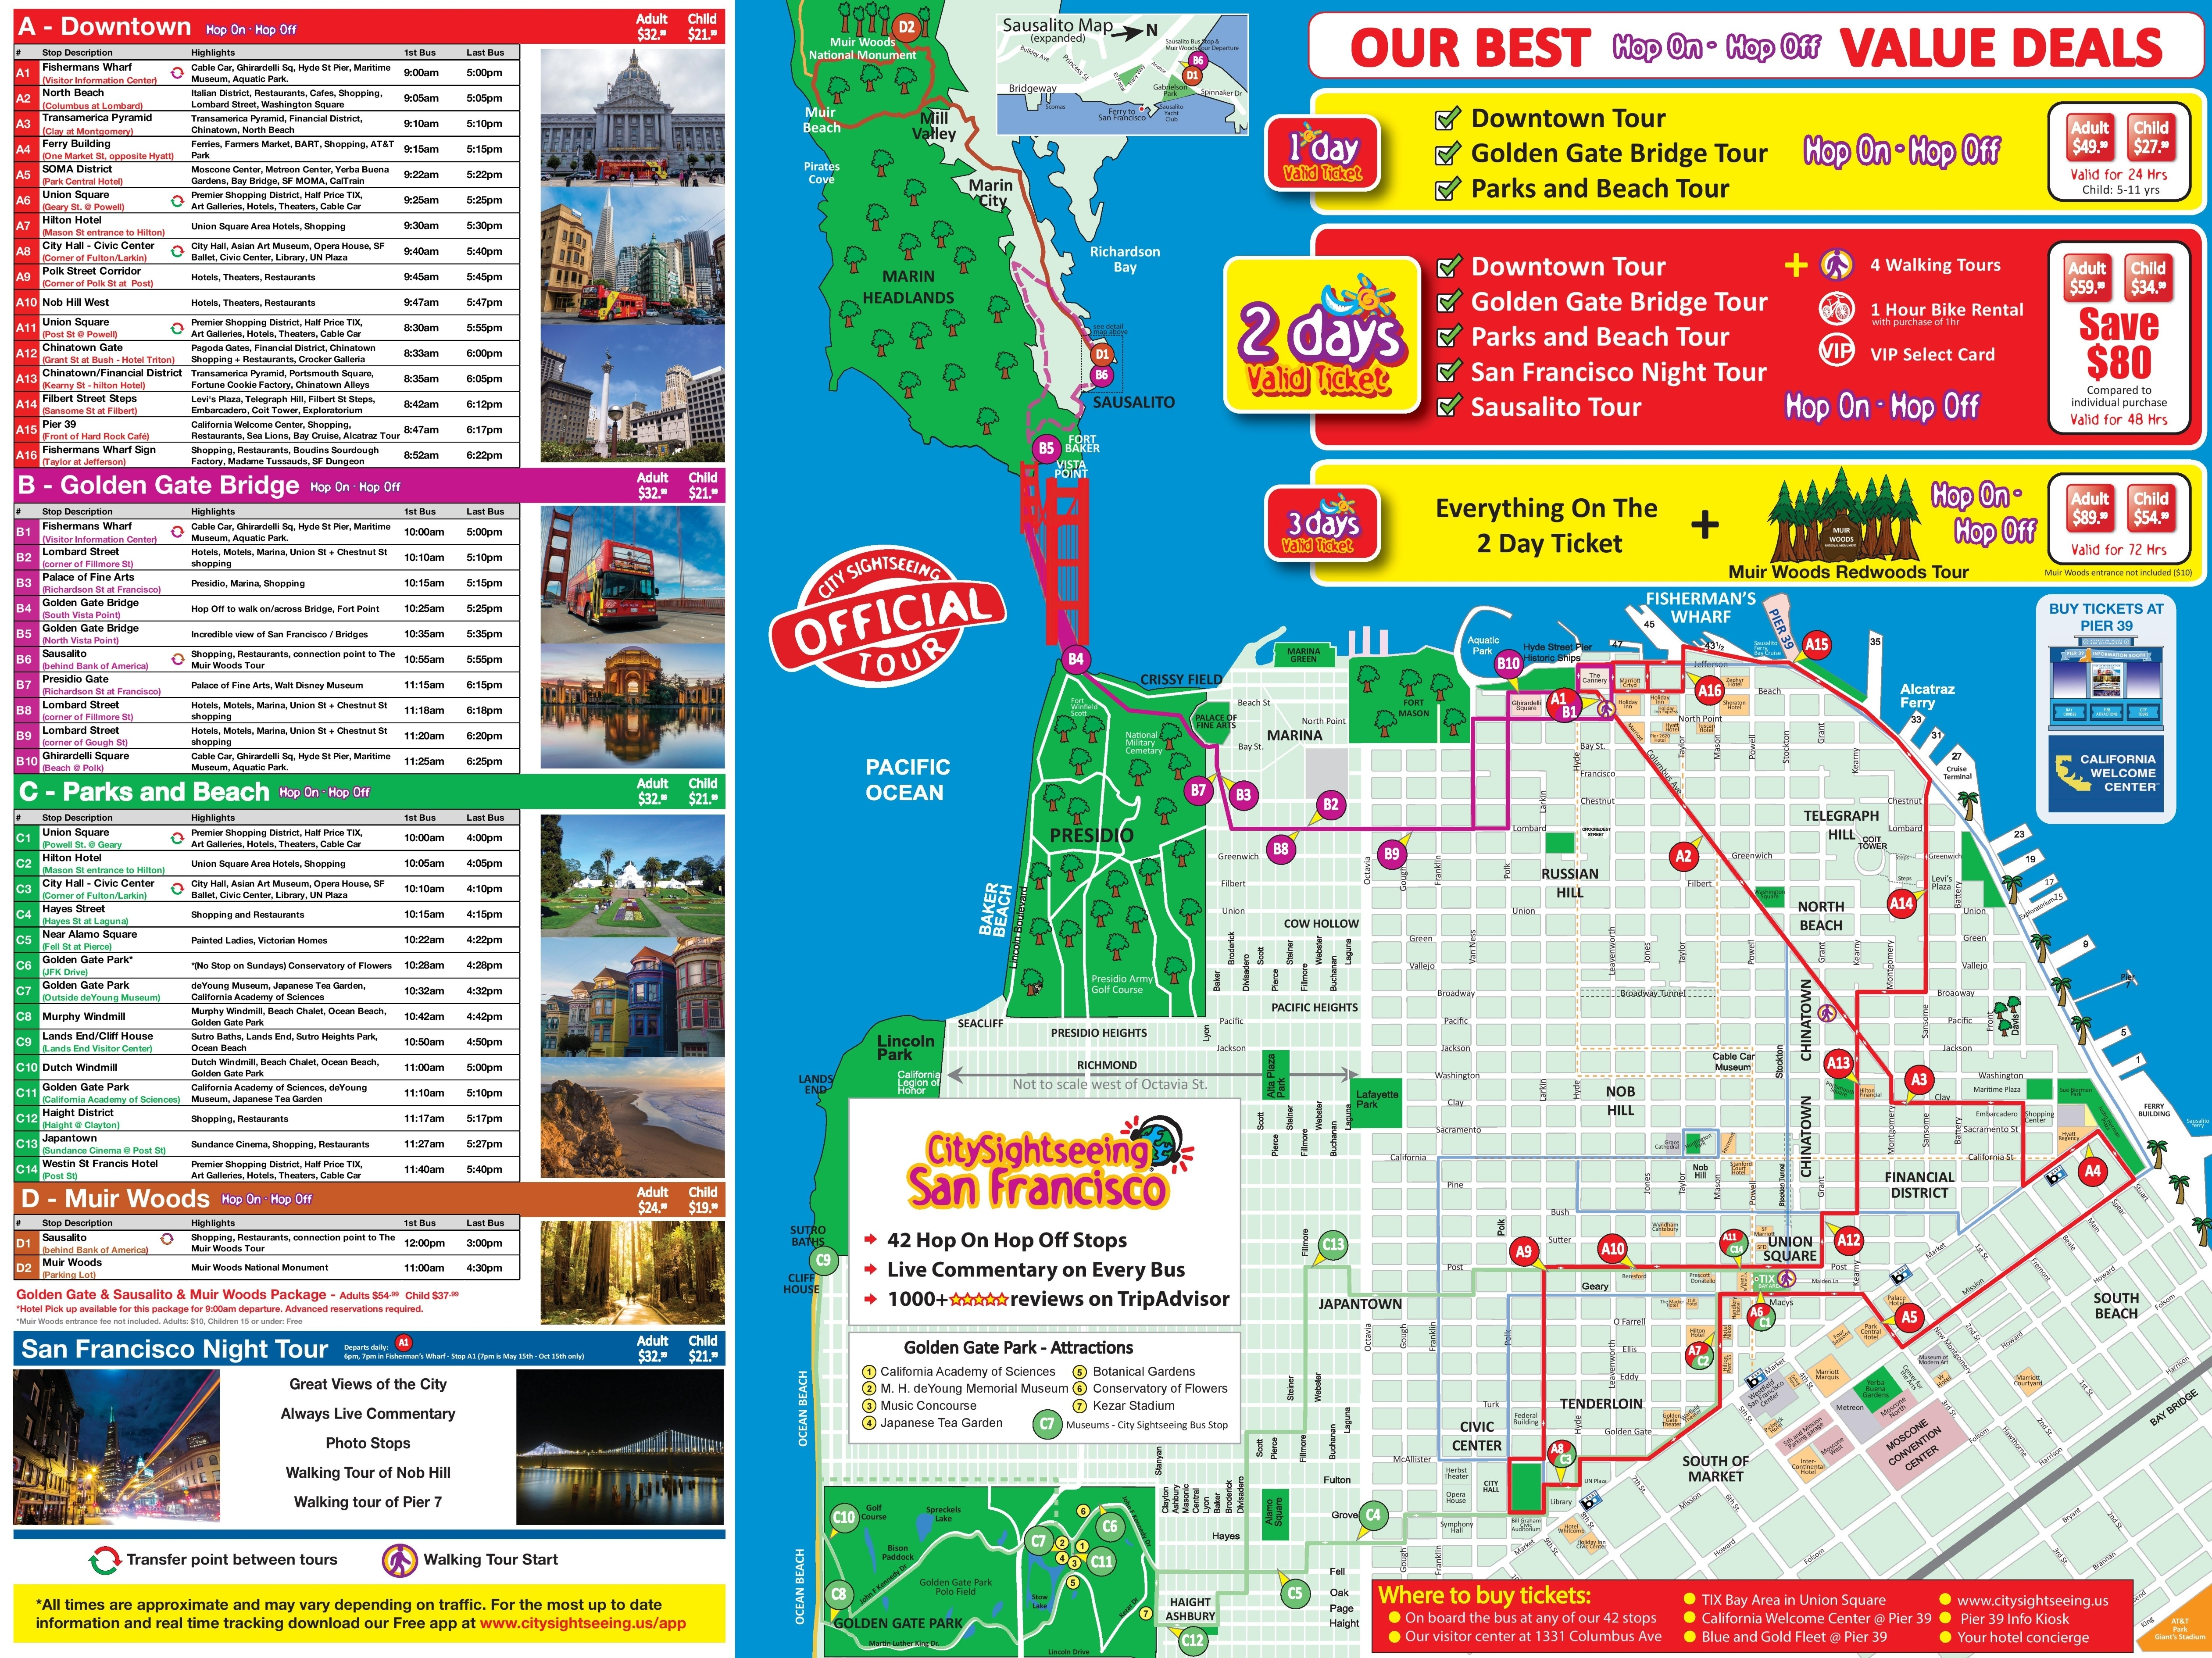 San Francisco Tourist Attractions Map San Francisco Tourist - Printable Map Of San Francisco Tourist Attractions